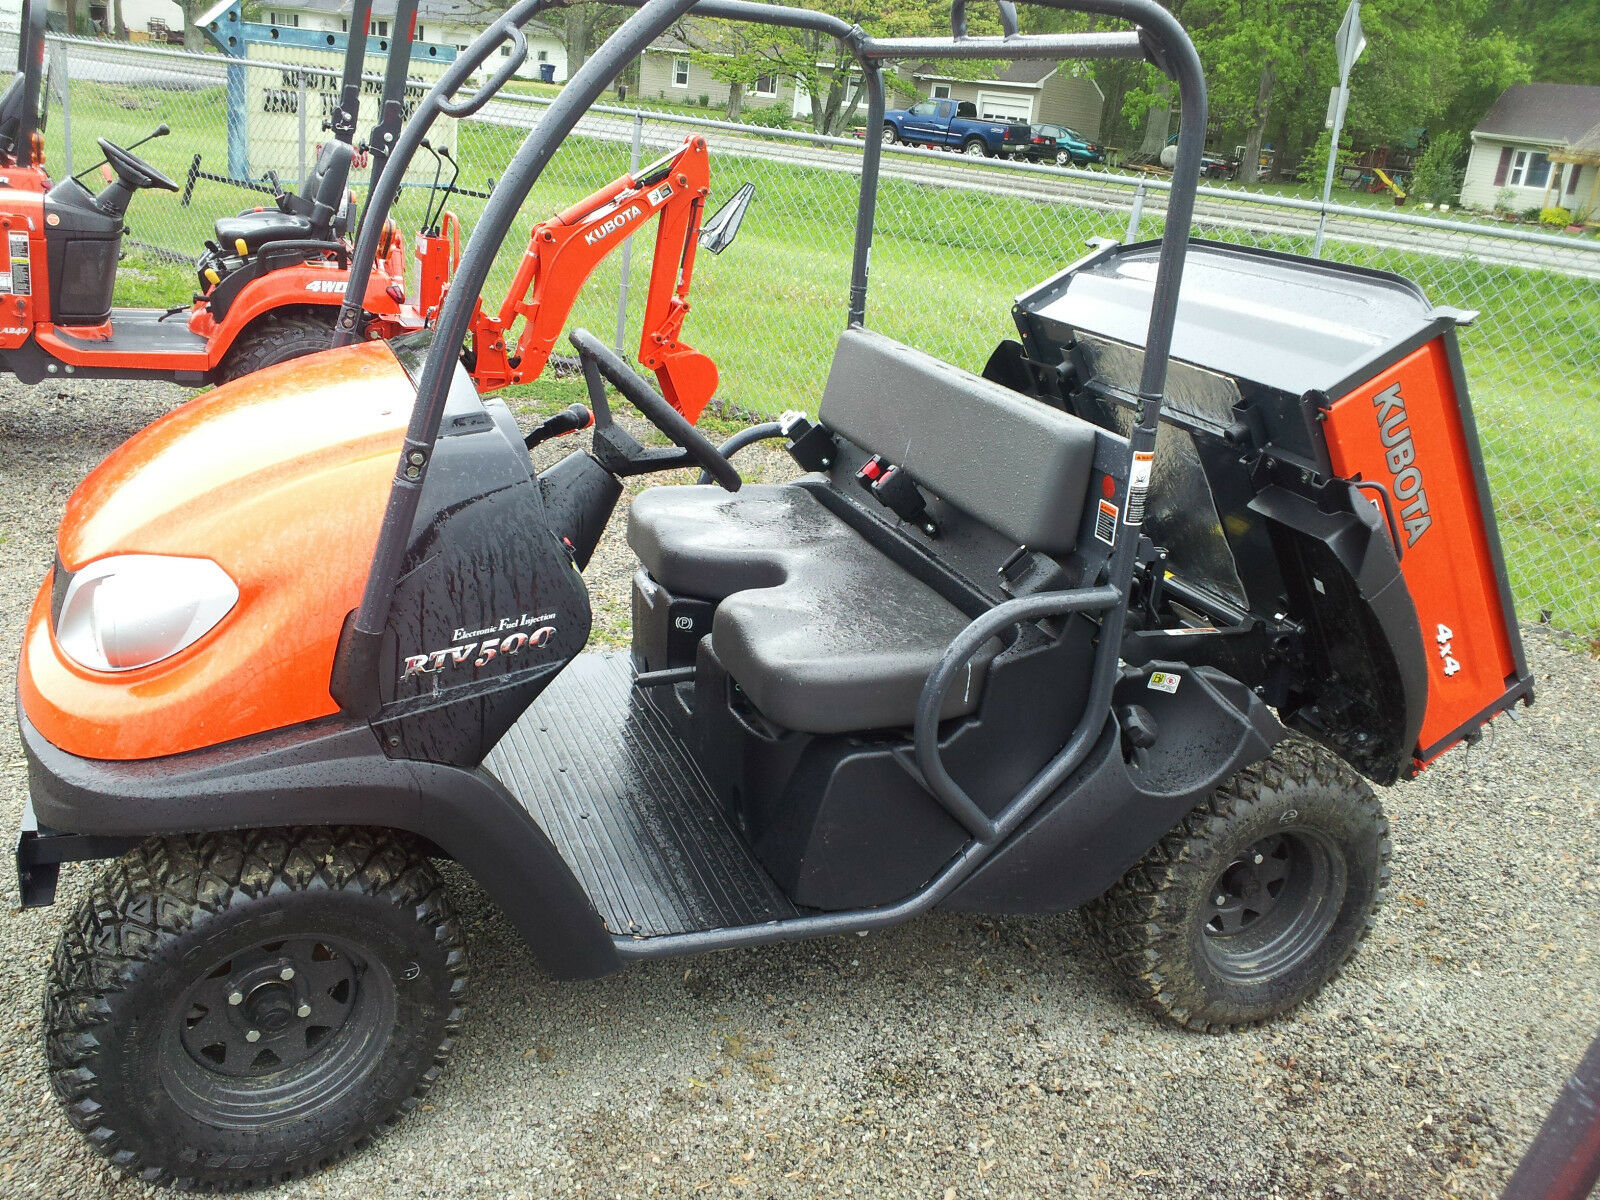 Kubota Rtv 500 Hydraulic Bed Lift Kit 149500 Picclick Wiring Schematic 1 Of 2only 2 Available